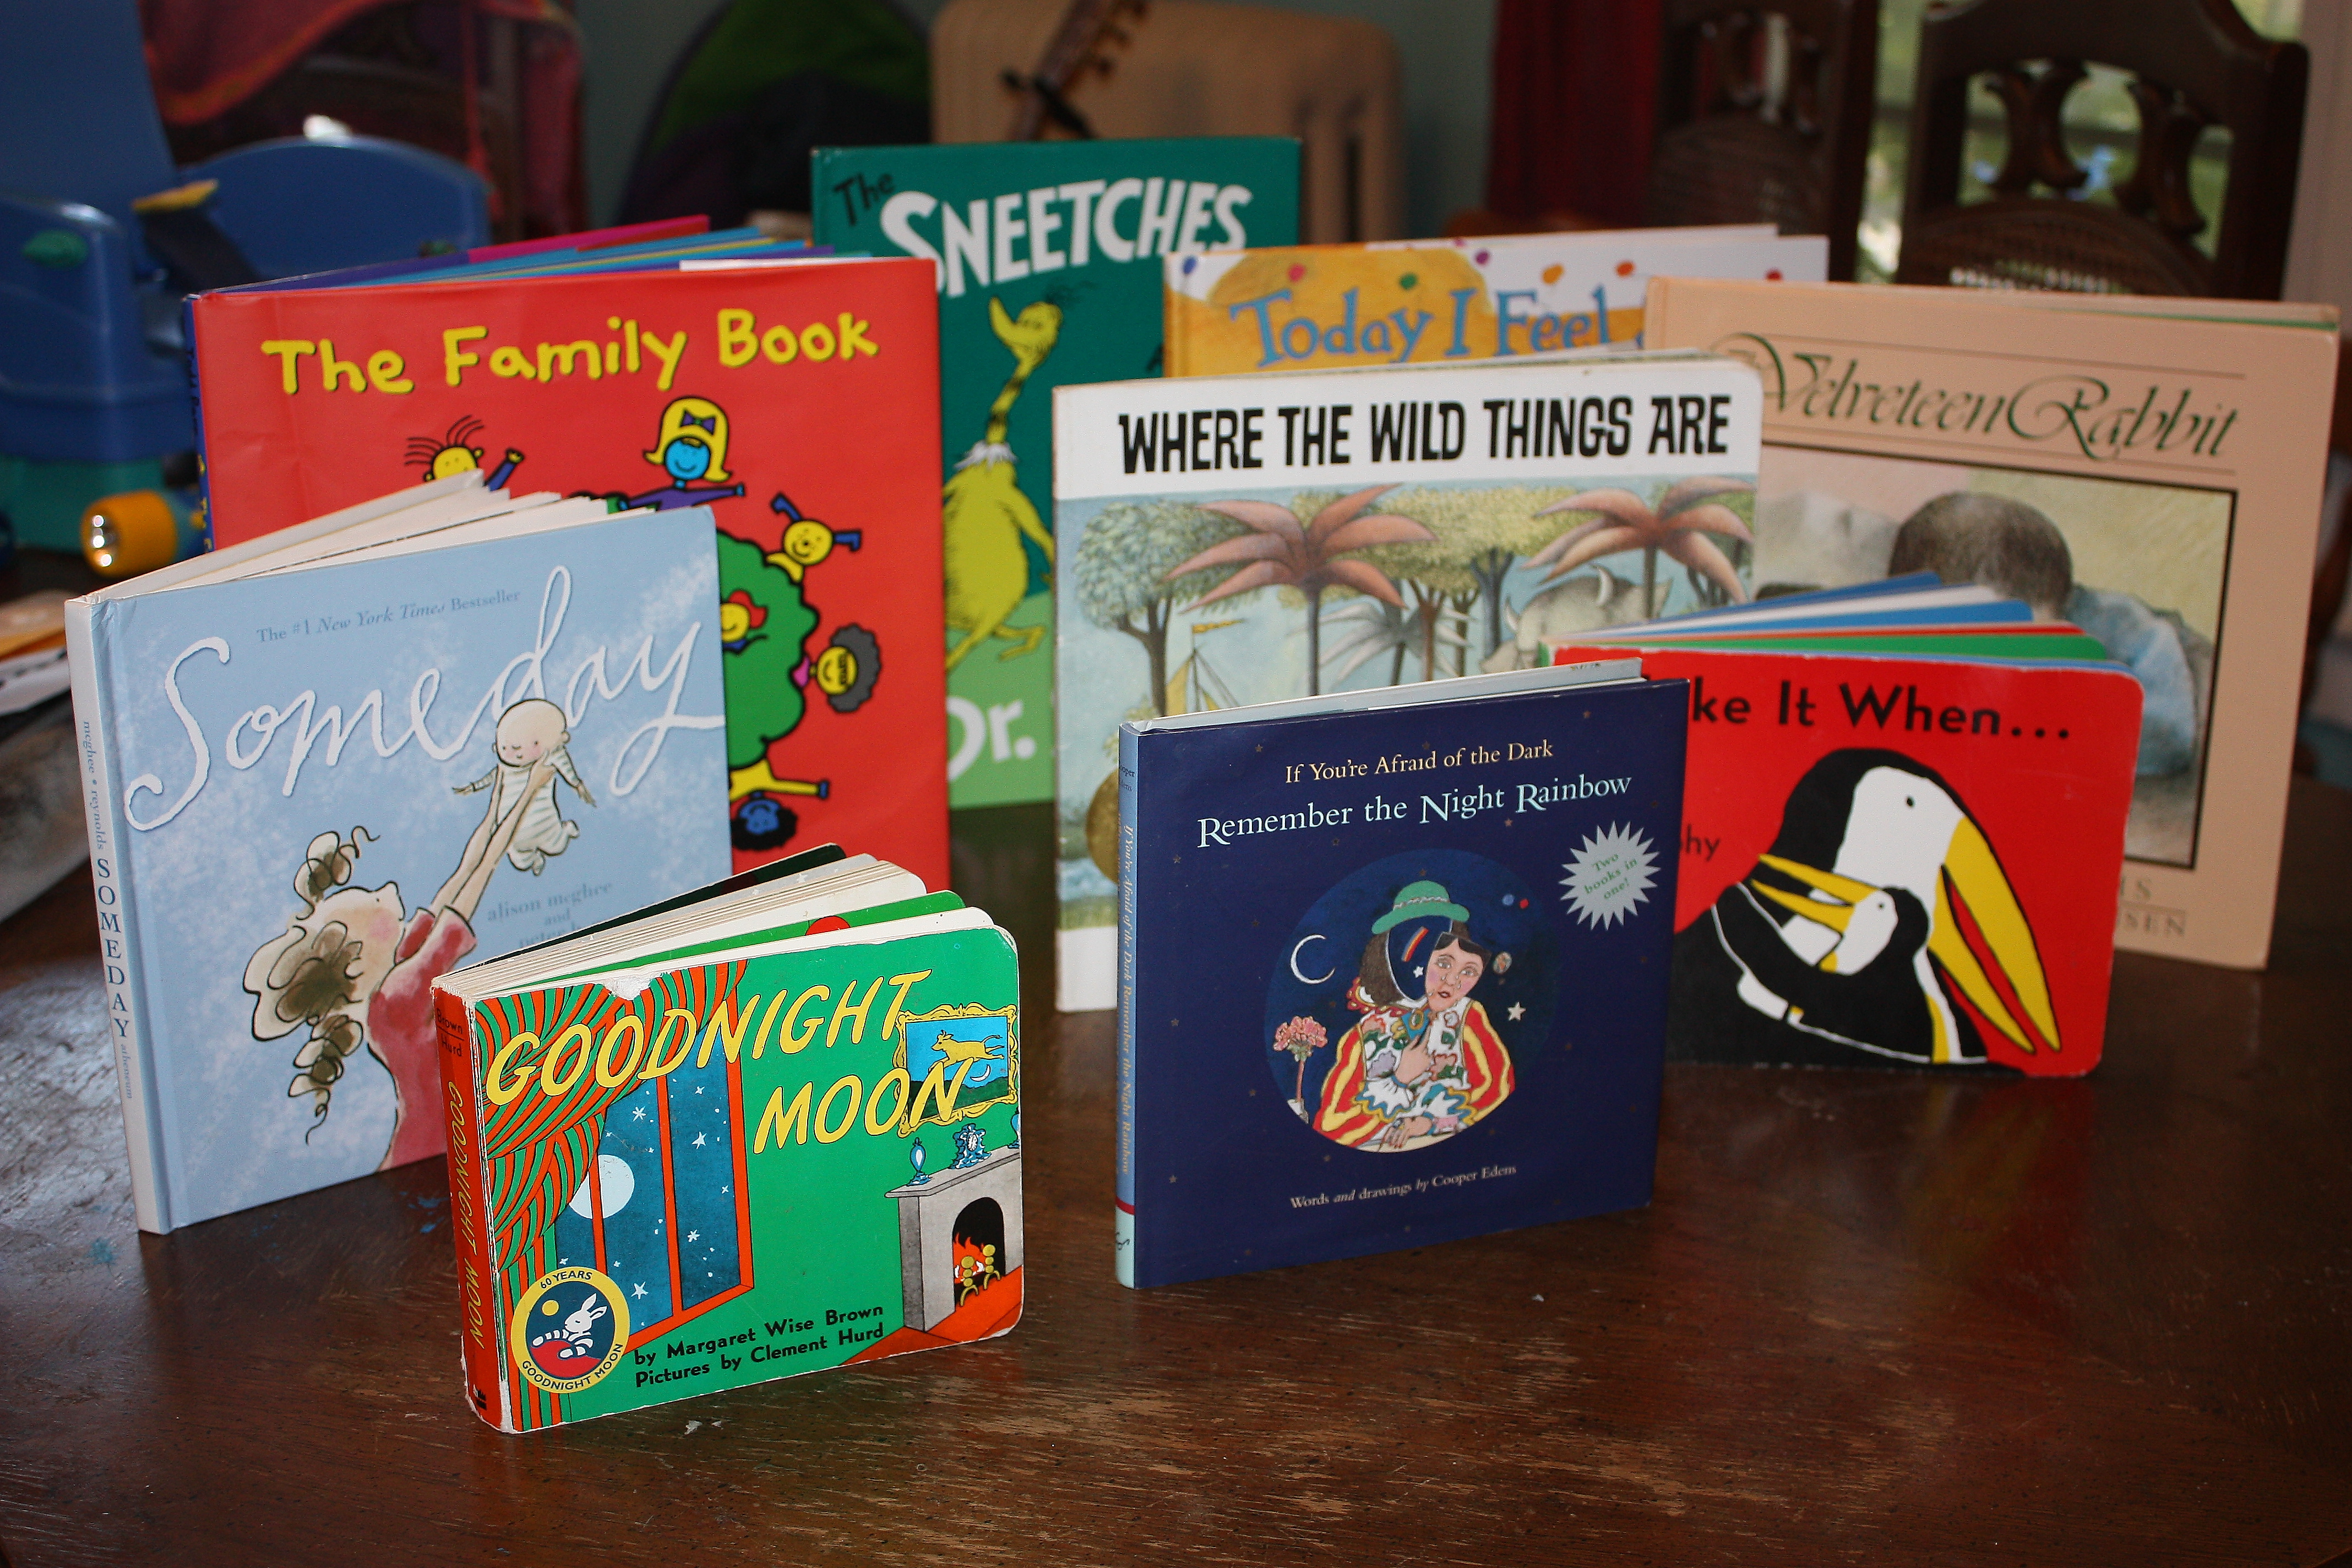 4f88ade8680 Meryl's Top 10 Kids' Books, as of 8:44 PM on May 13th, and Subject to  Change at Any Moment, because New Books Are Being Published Every Day, and  Meryl is ...